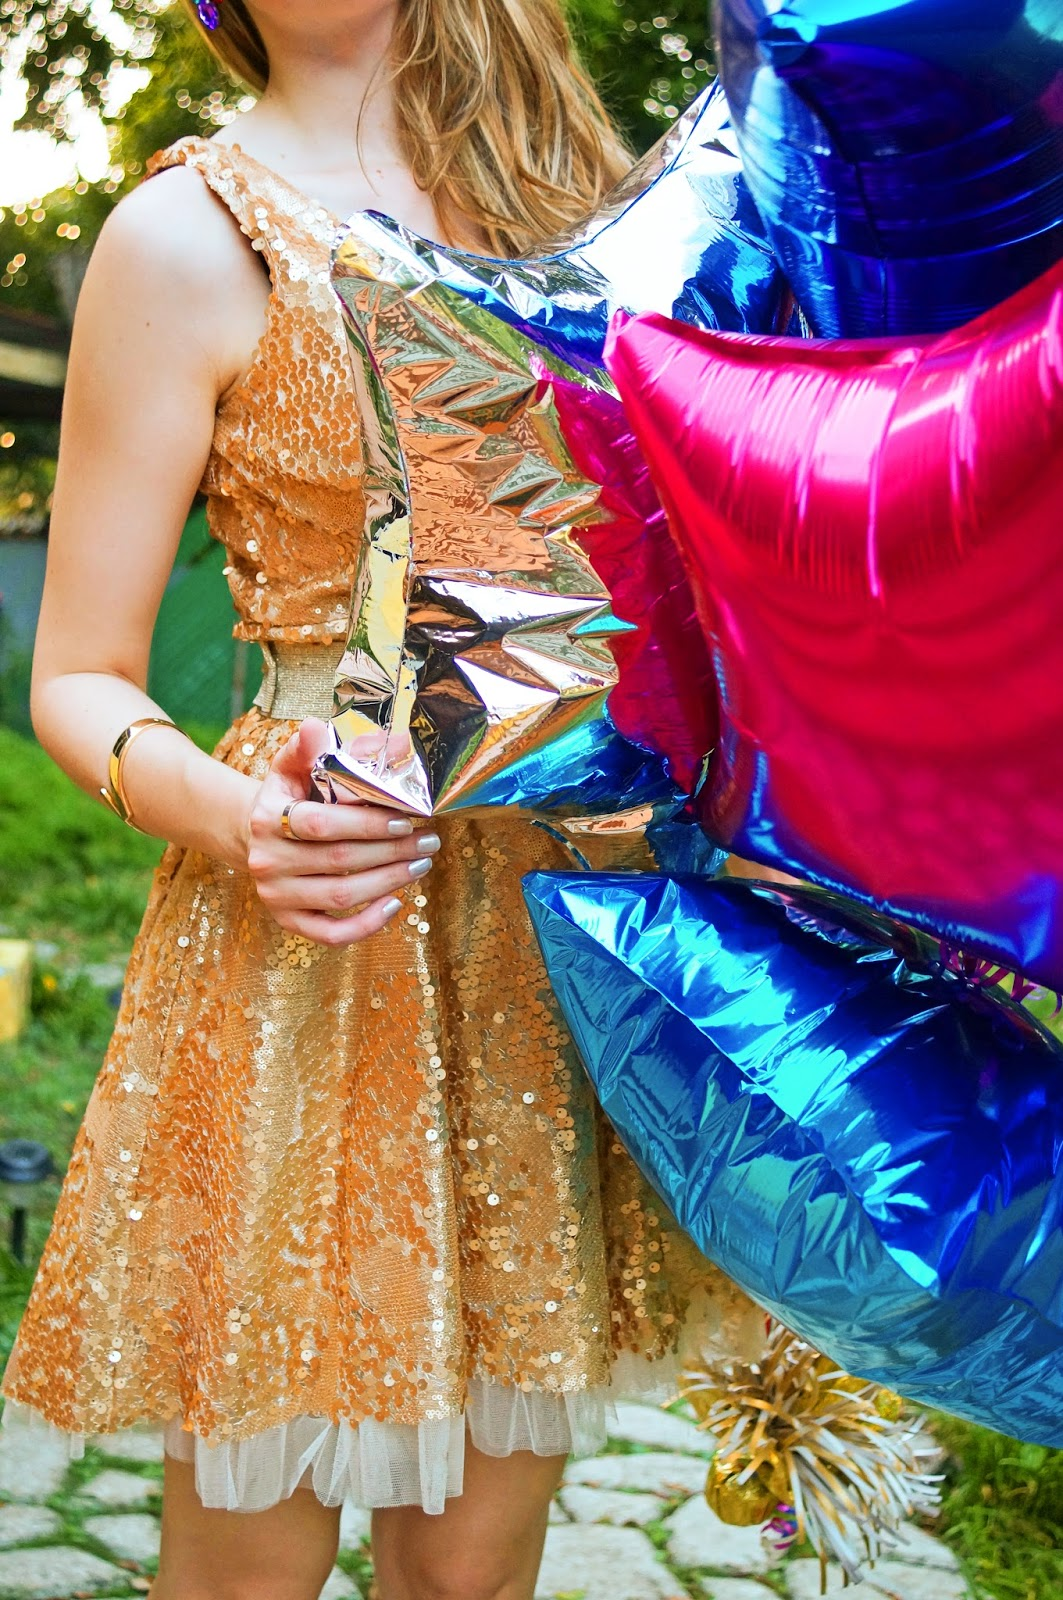 Metallic Balloons are simple and easy decor for New Years Eve